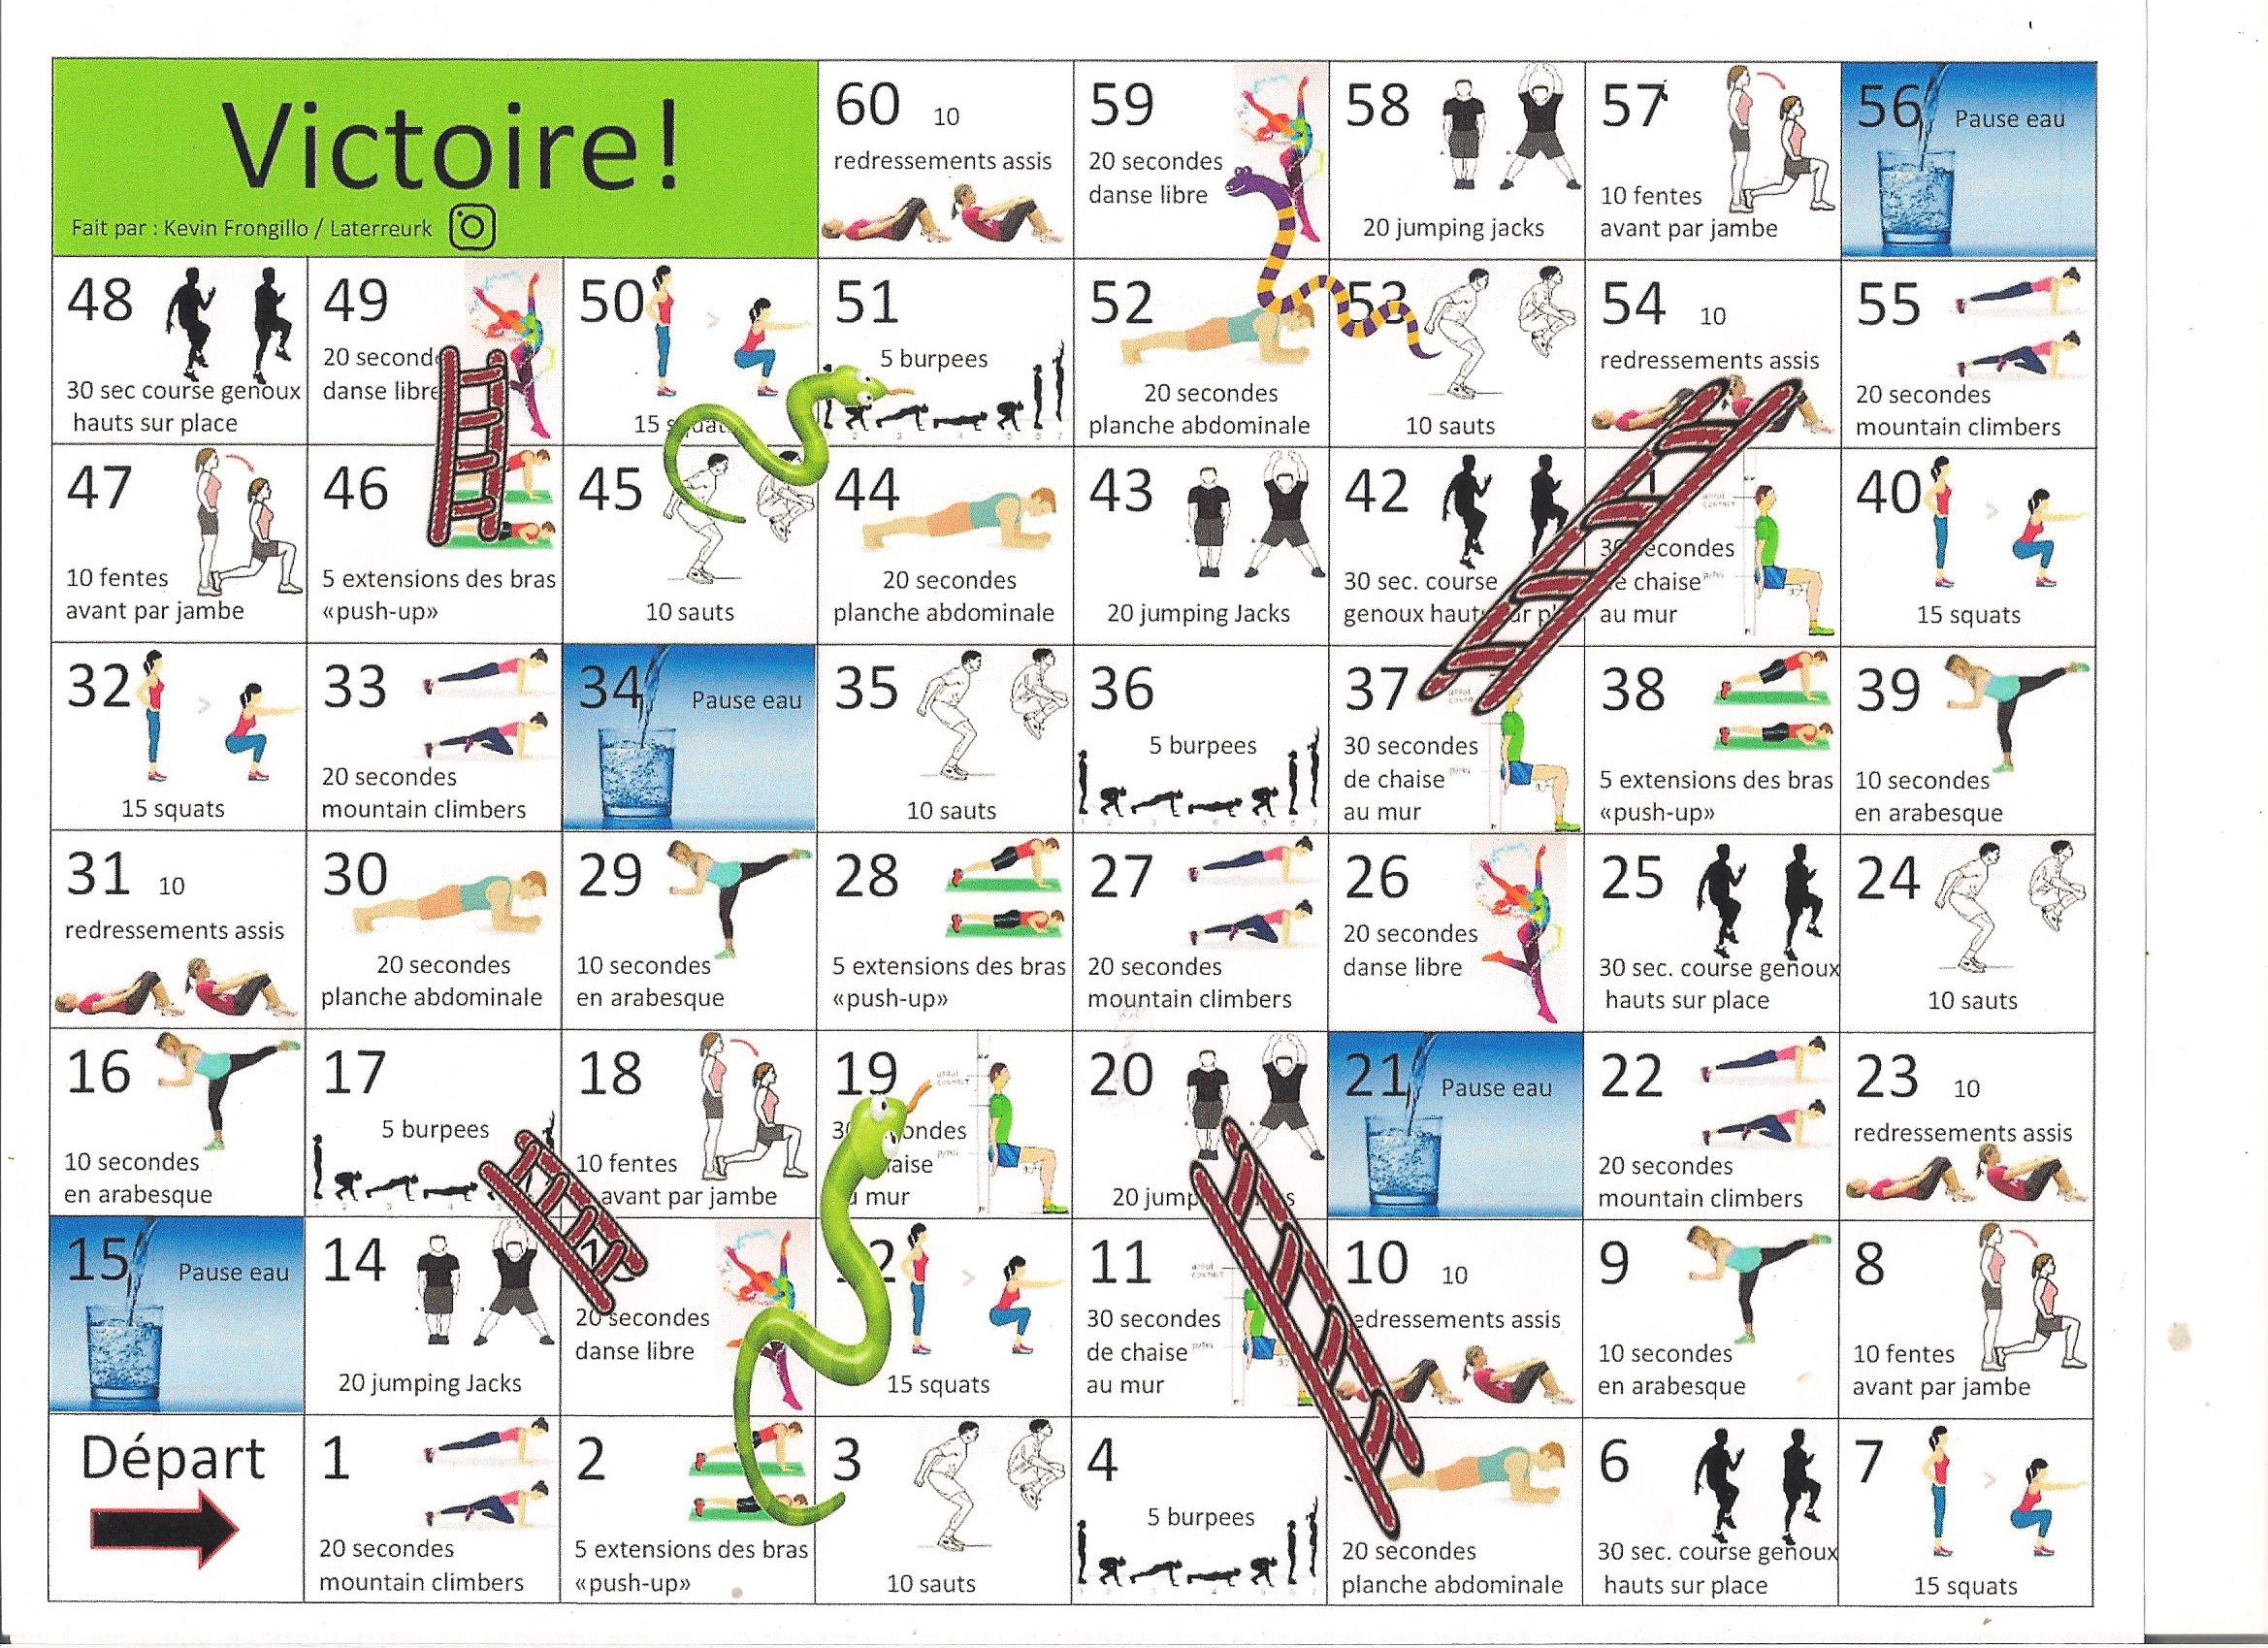 Snakes and Ladders games with corresponding exercises for each square